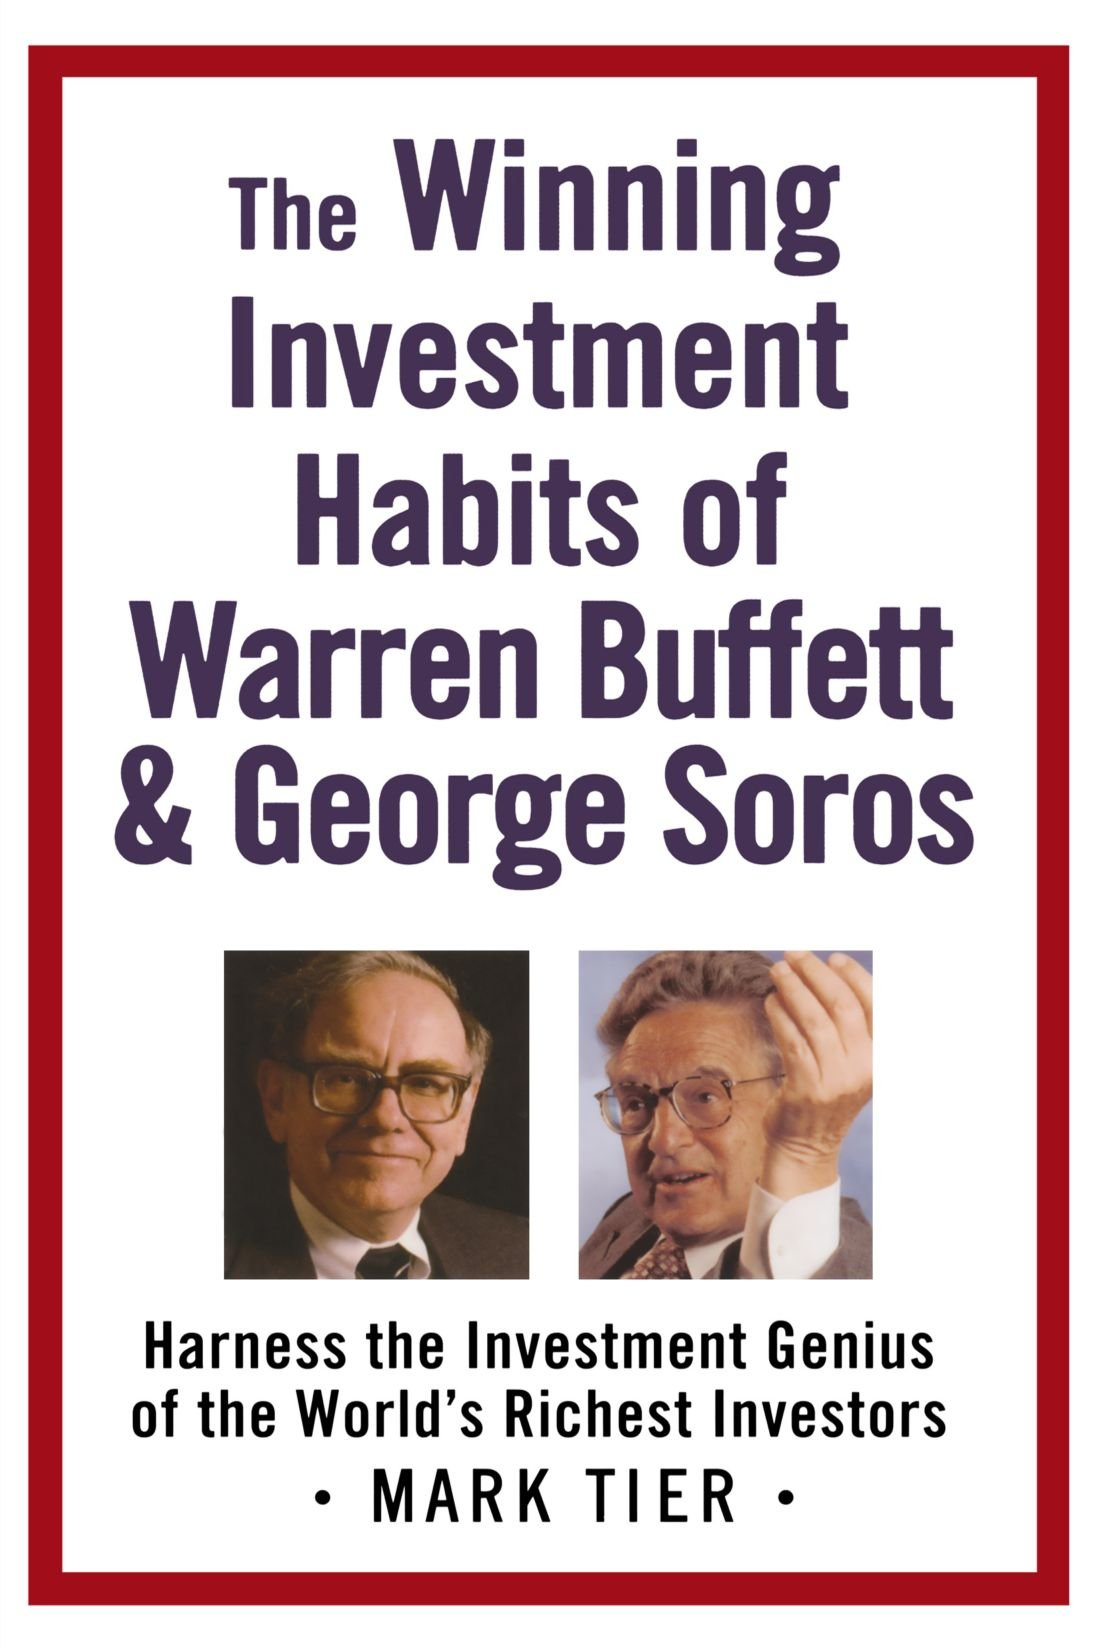 Download The Winning Investment Habits of Warren Buffett & George Soros: Harness the Investment Genius of the World's Richest Investors ebook